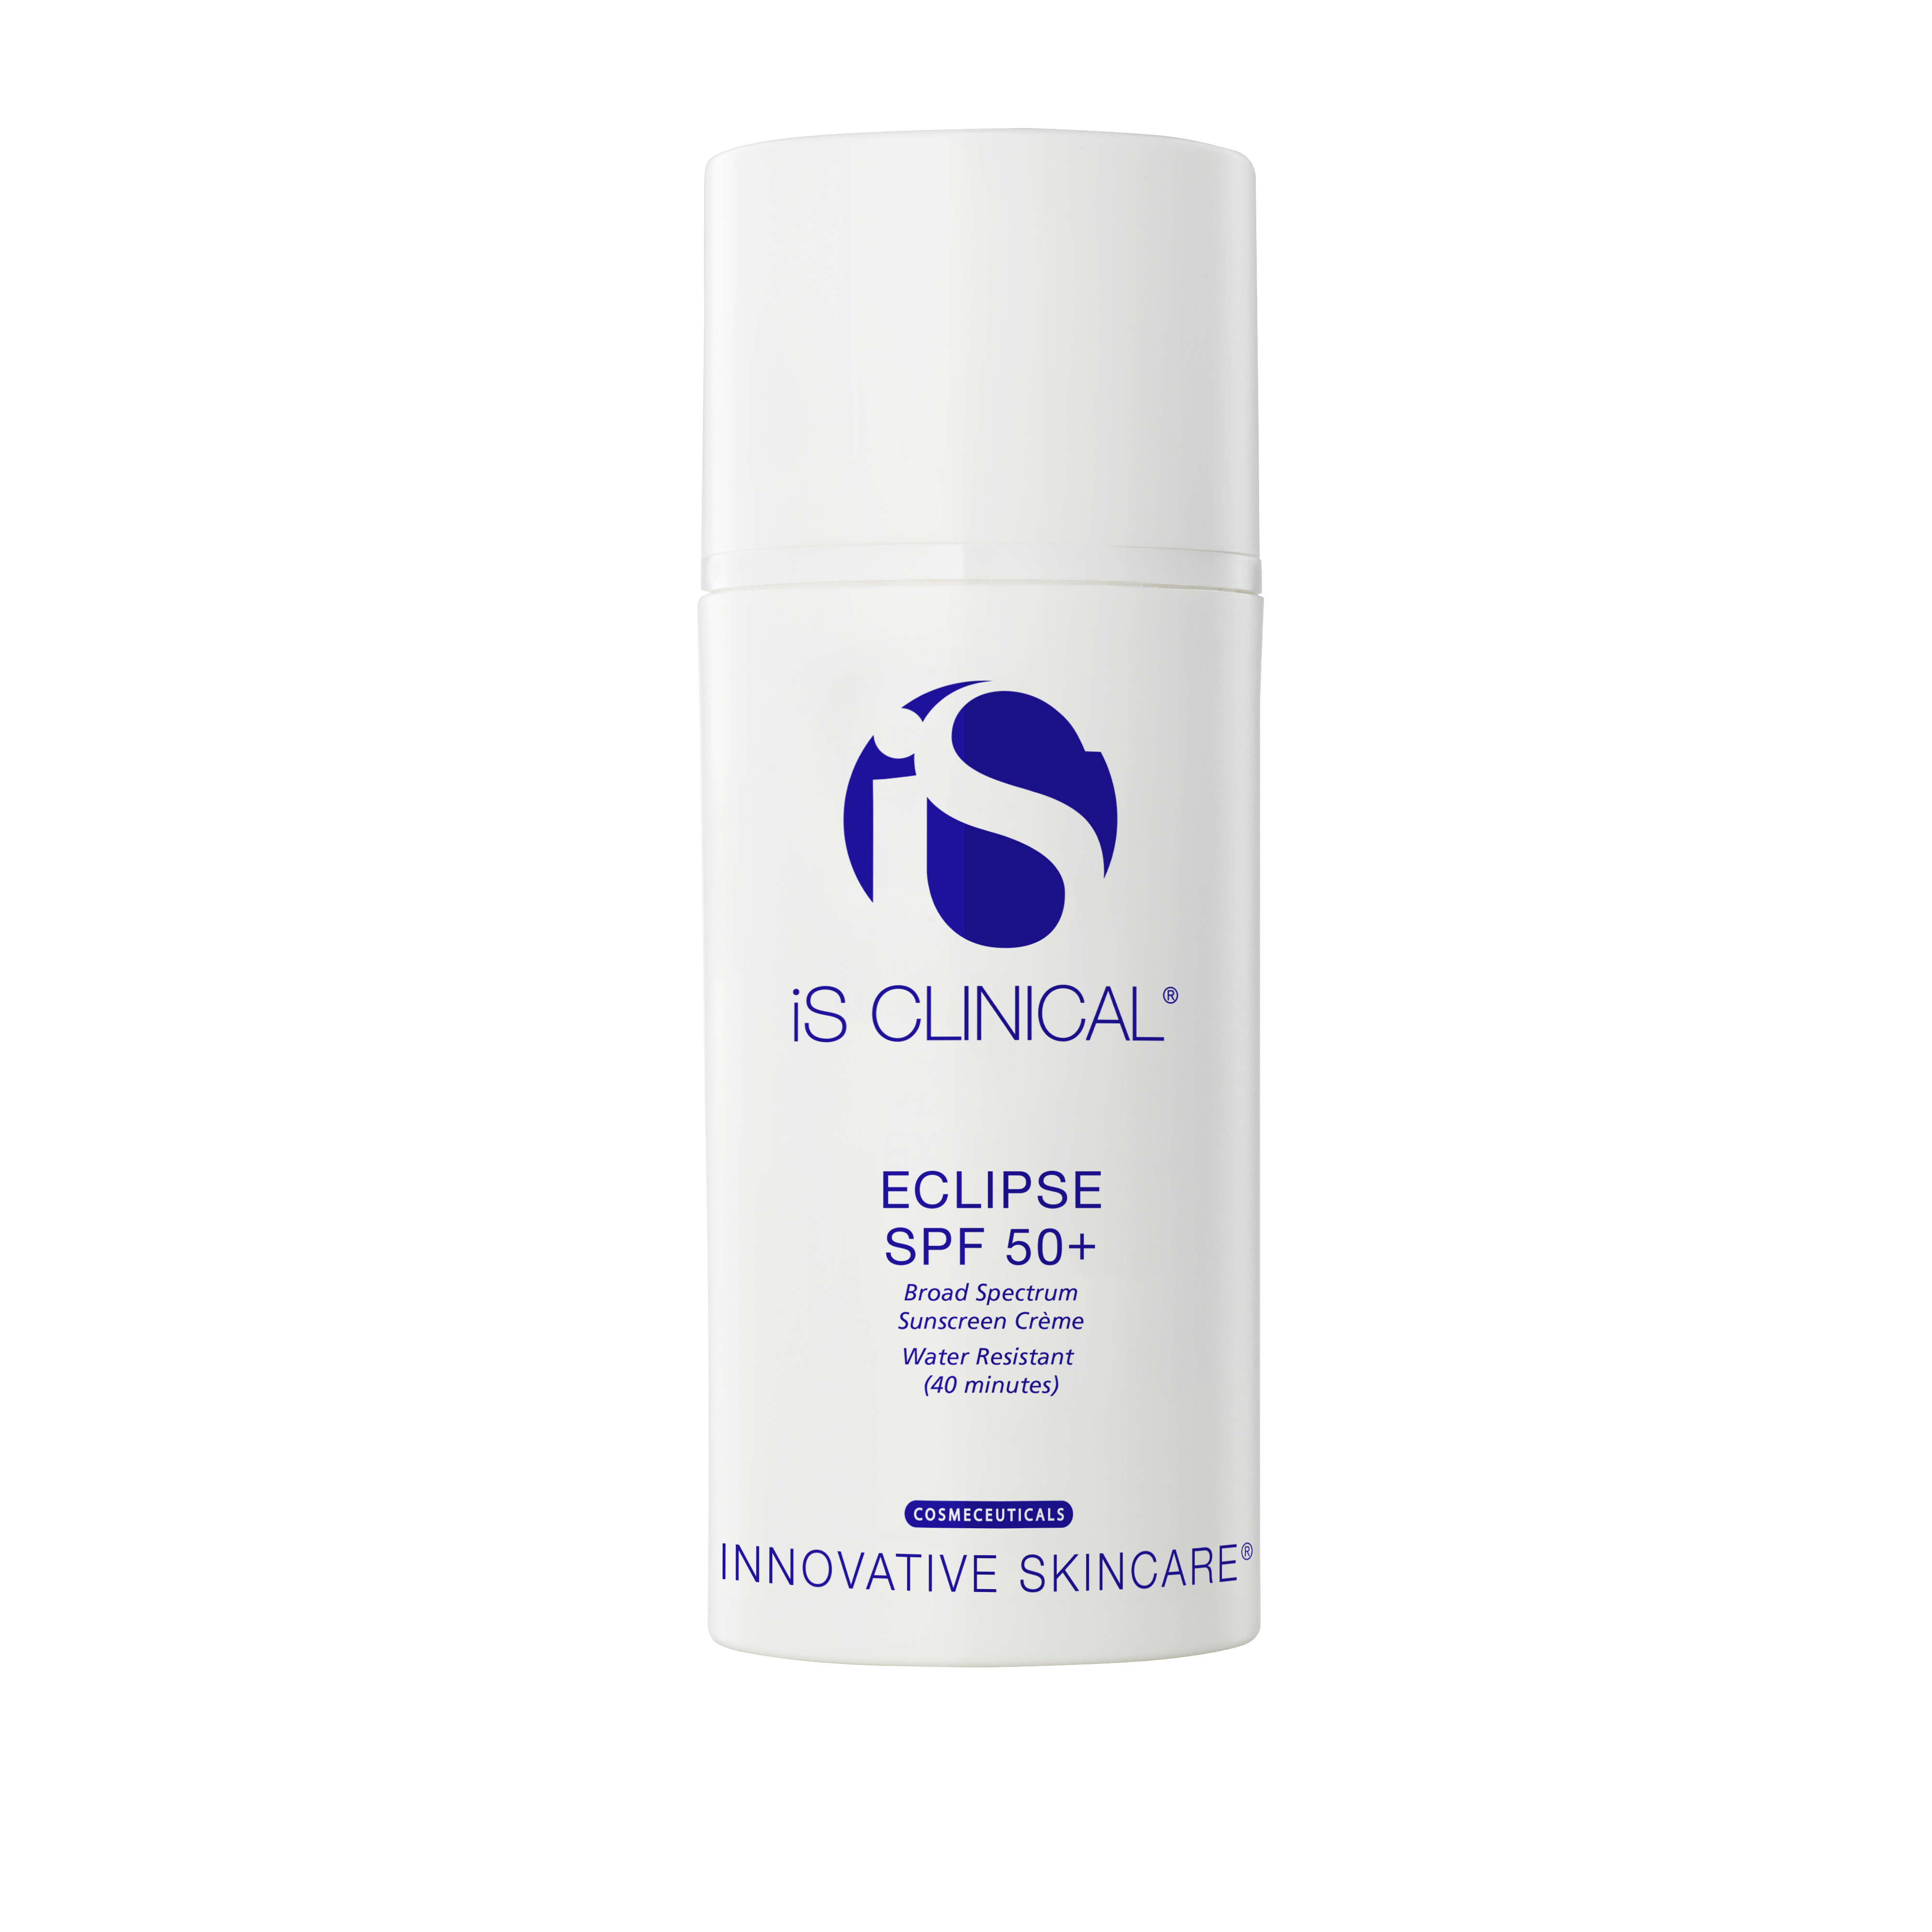 IS Clinical Eclipse SPF50+